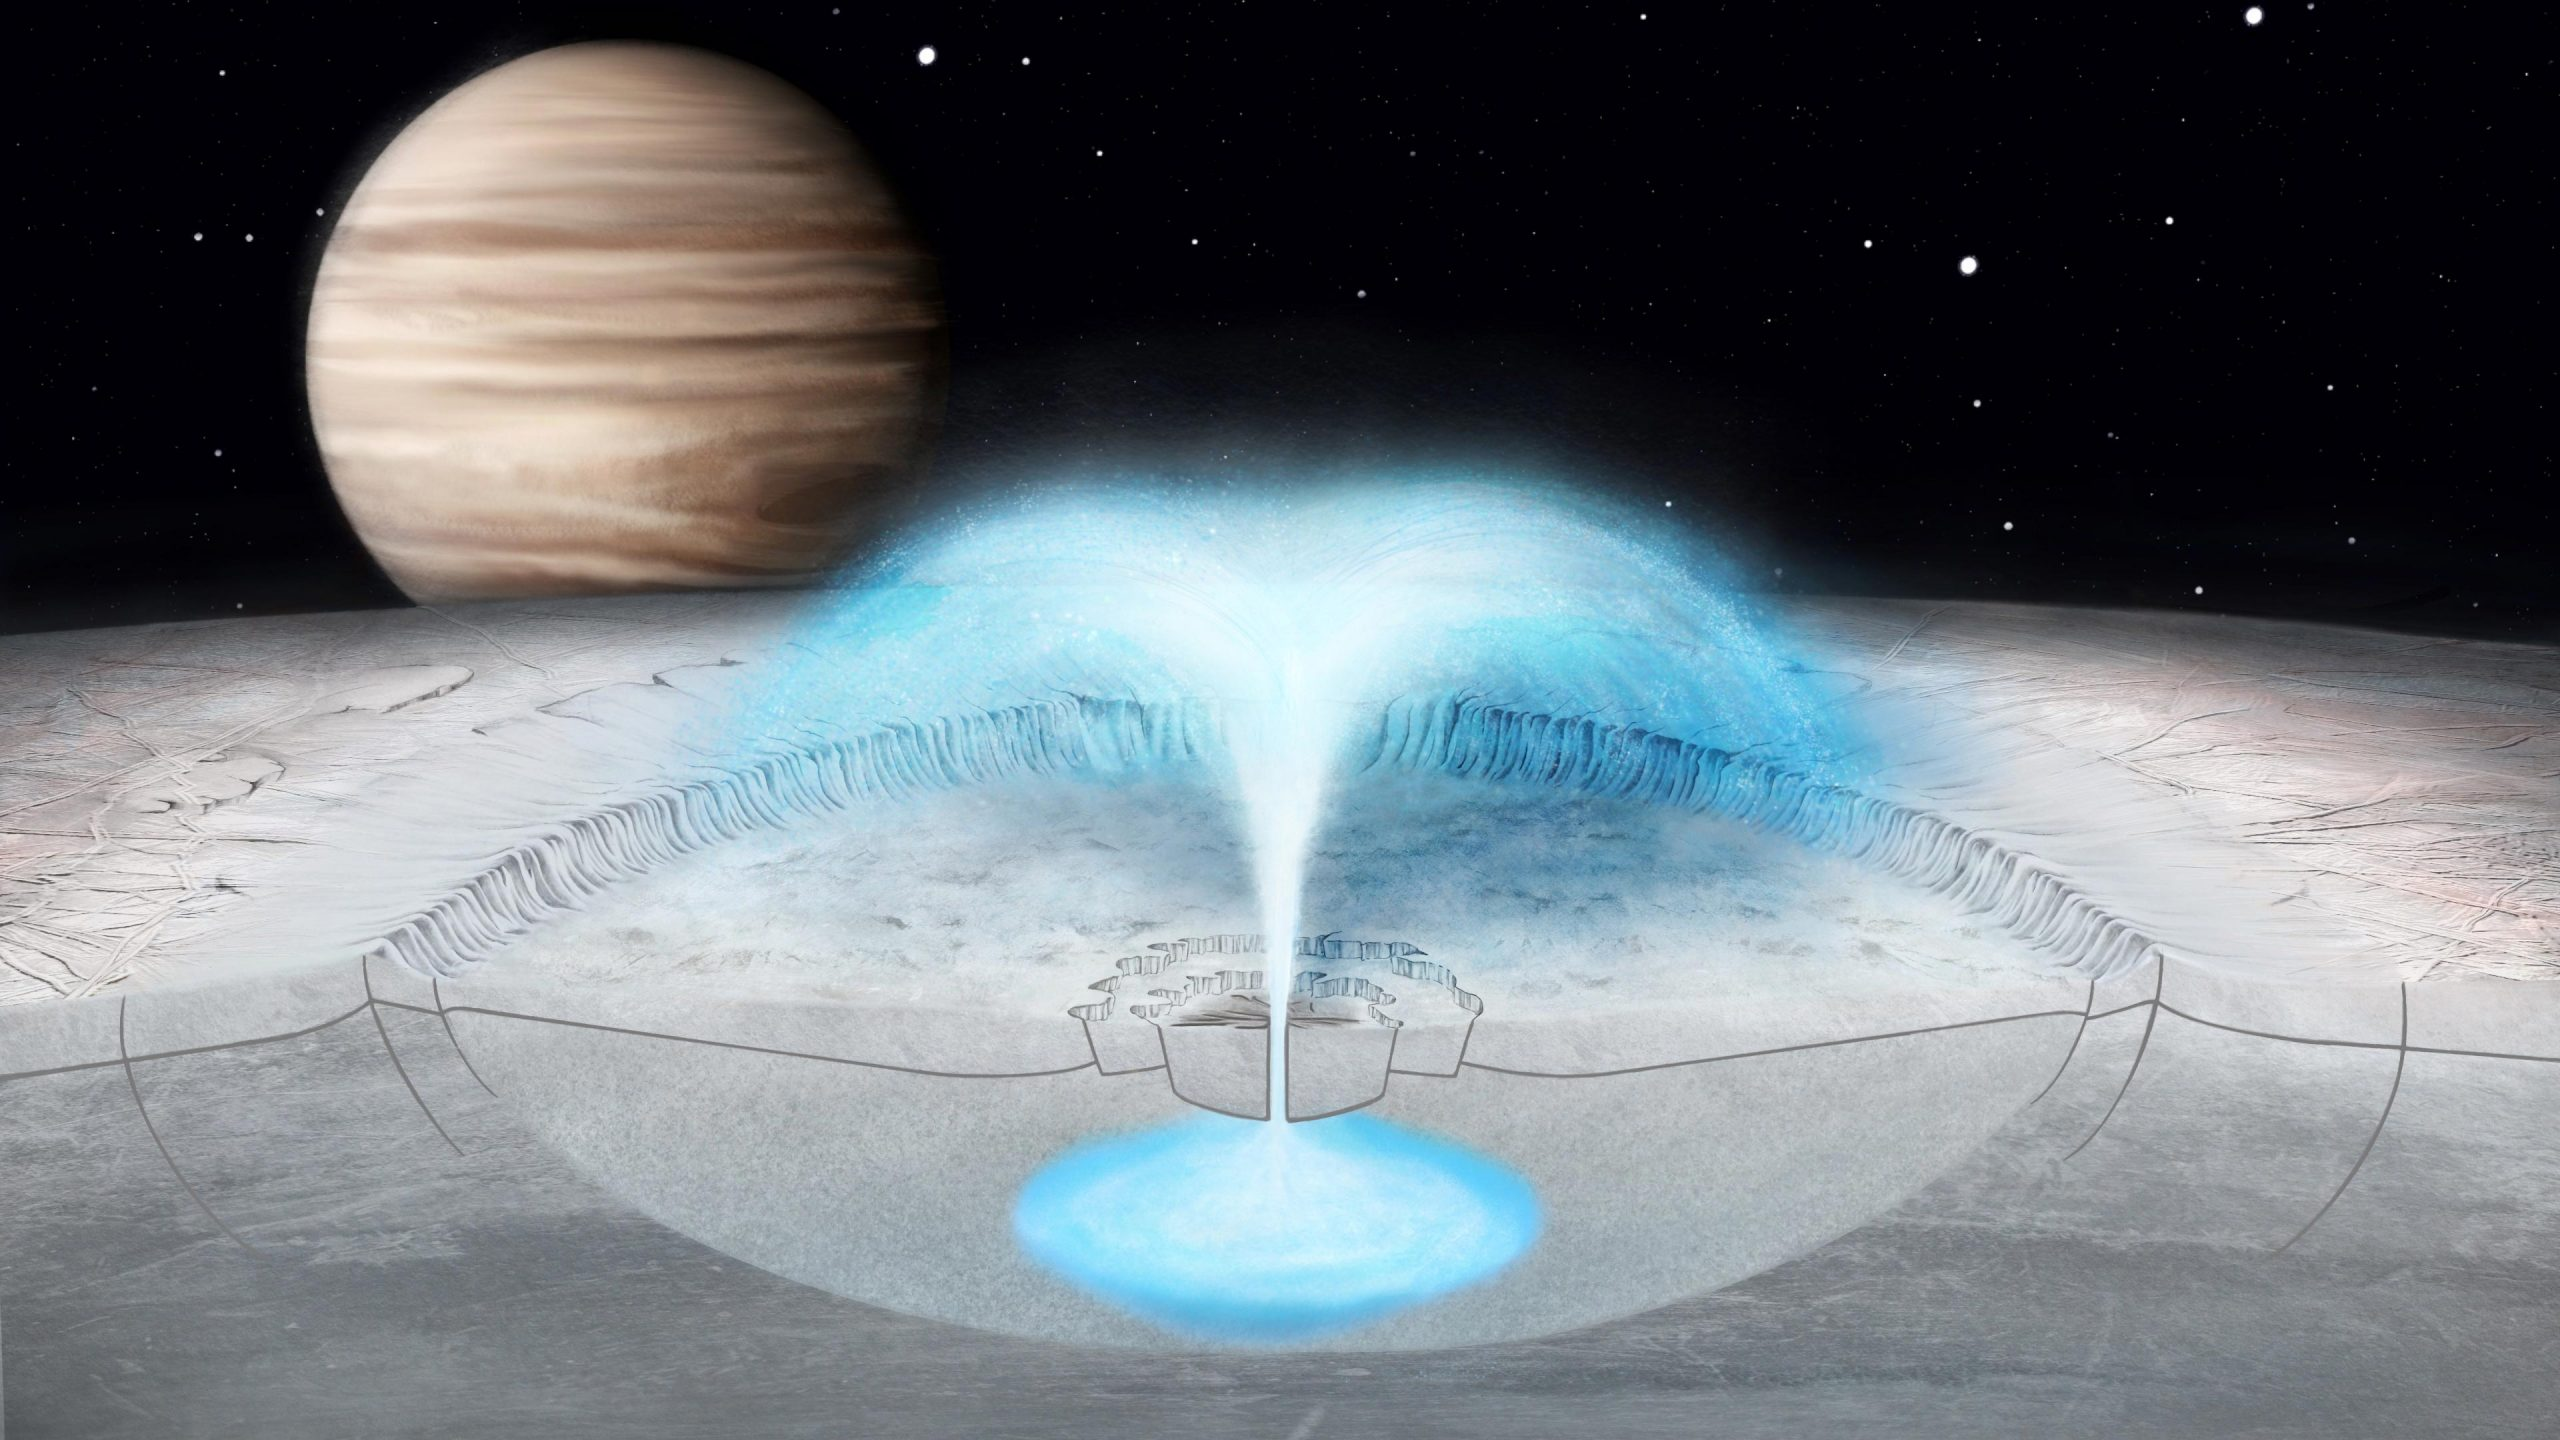 Potential Plumes on Jupiter's Icy Moon Europa Could Come From Water in the Crust - SciTechDaily